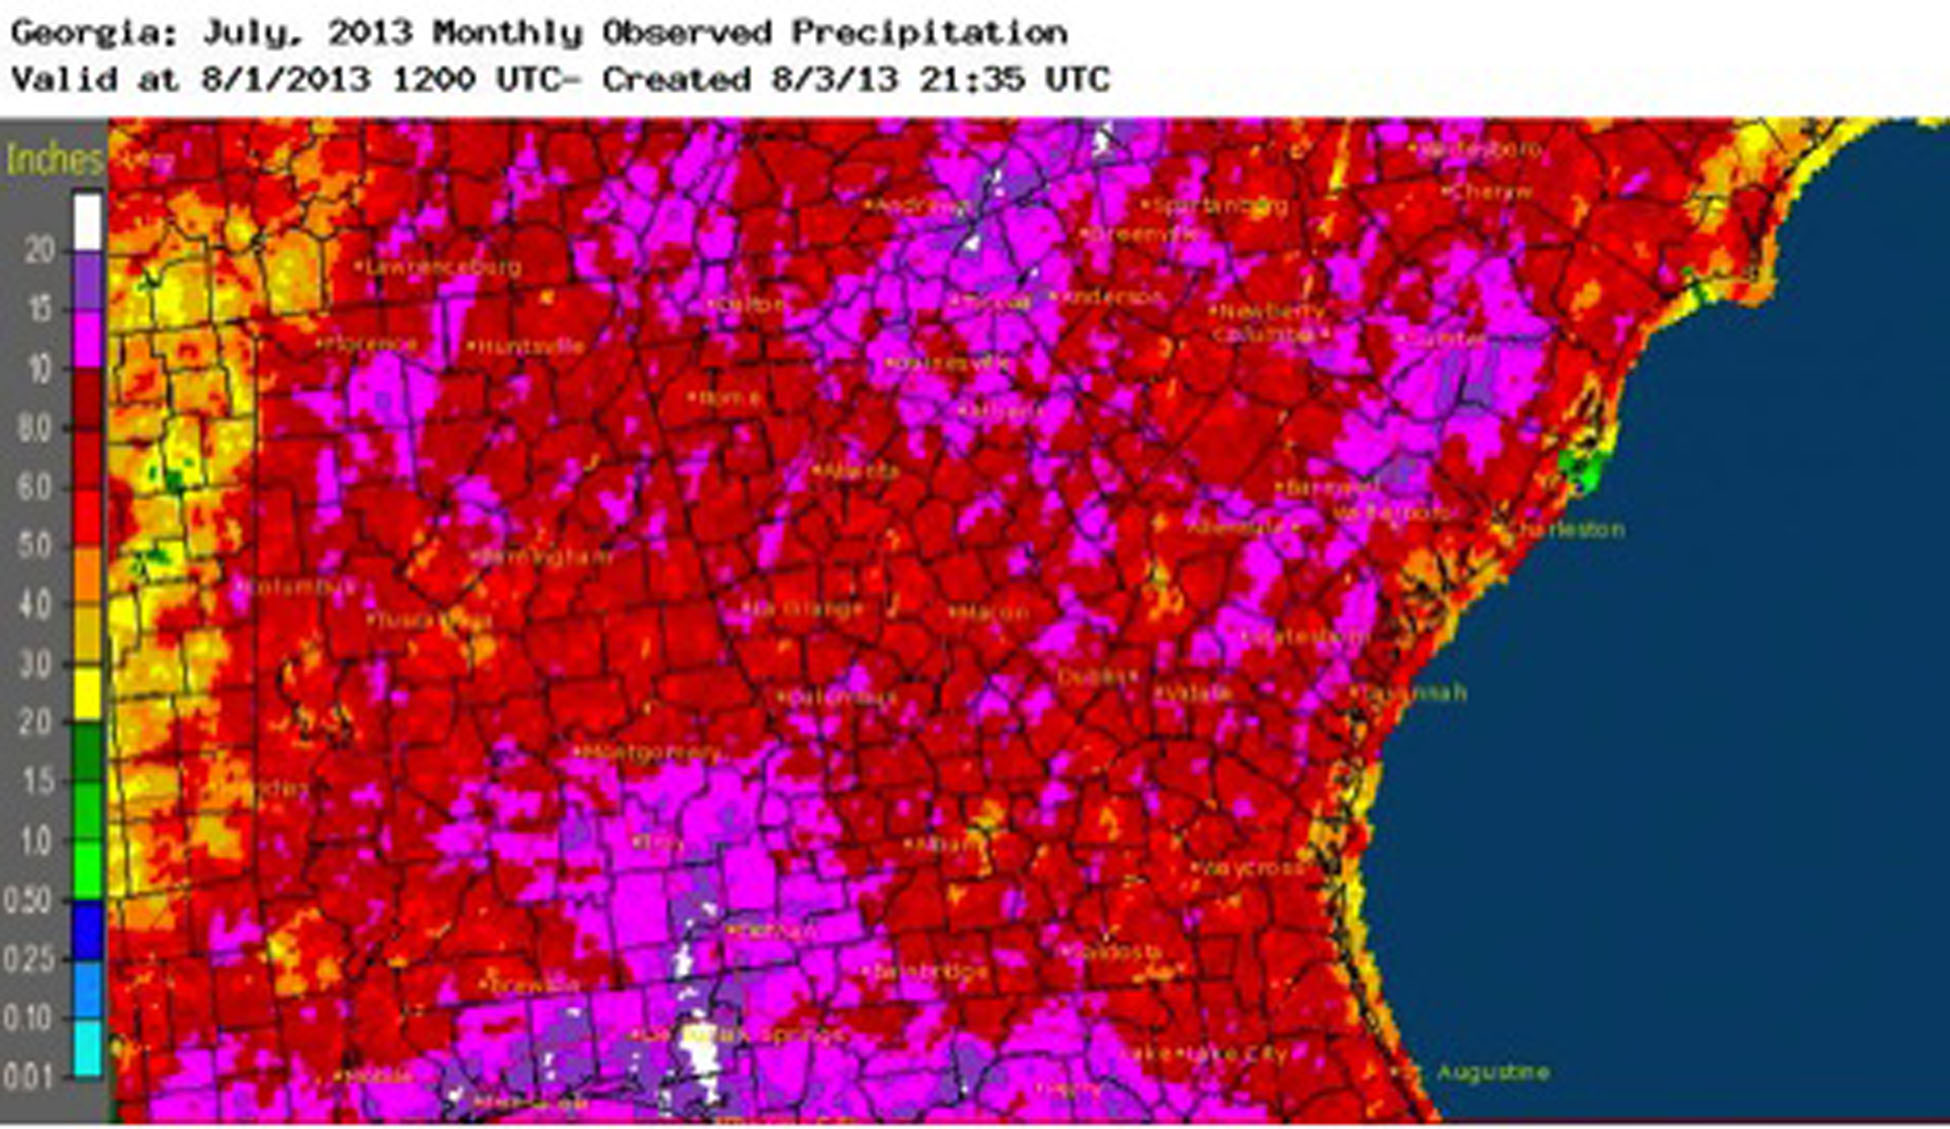 July 2013 Precip Totals